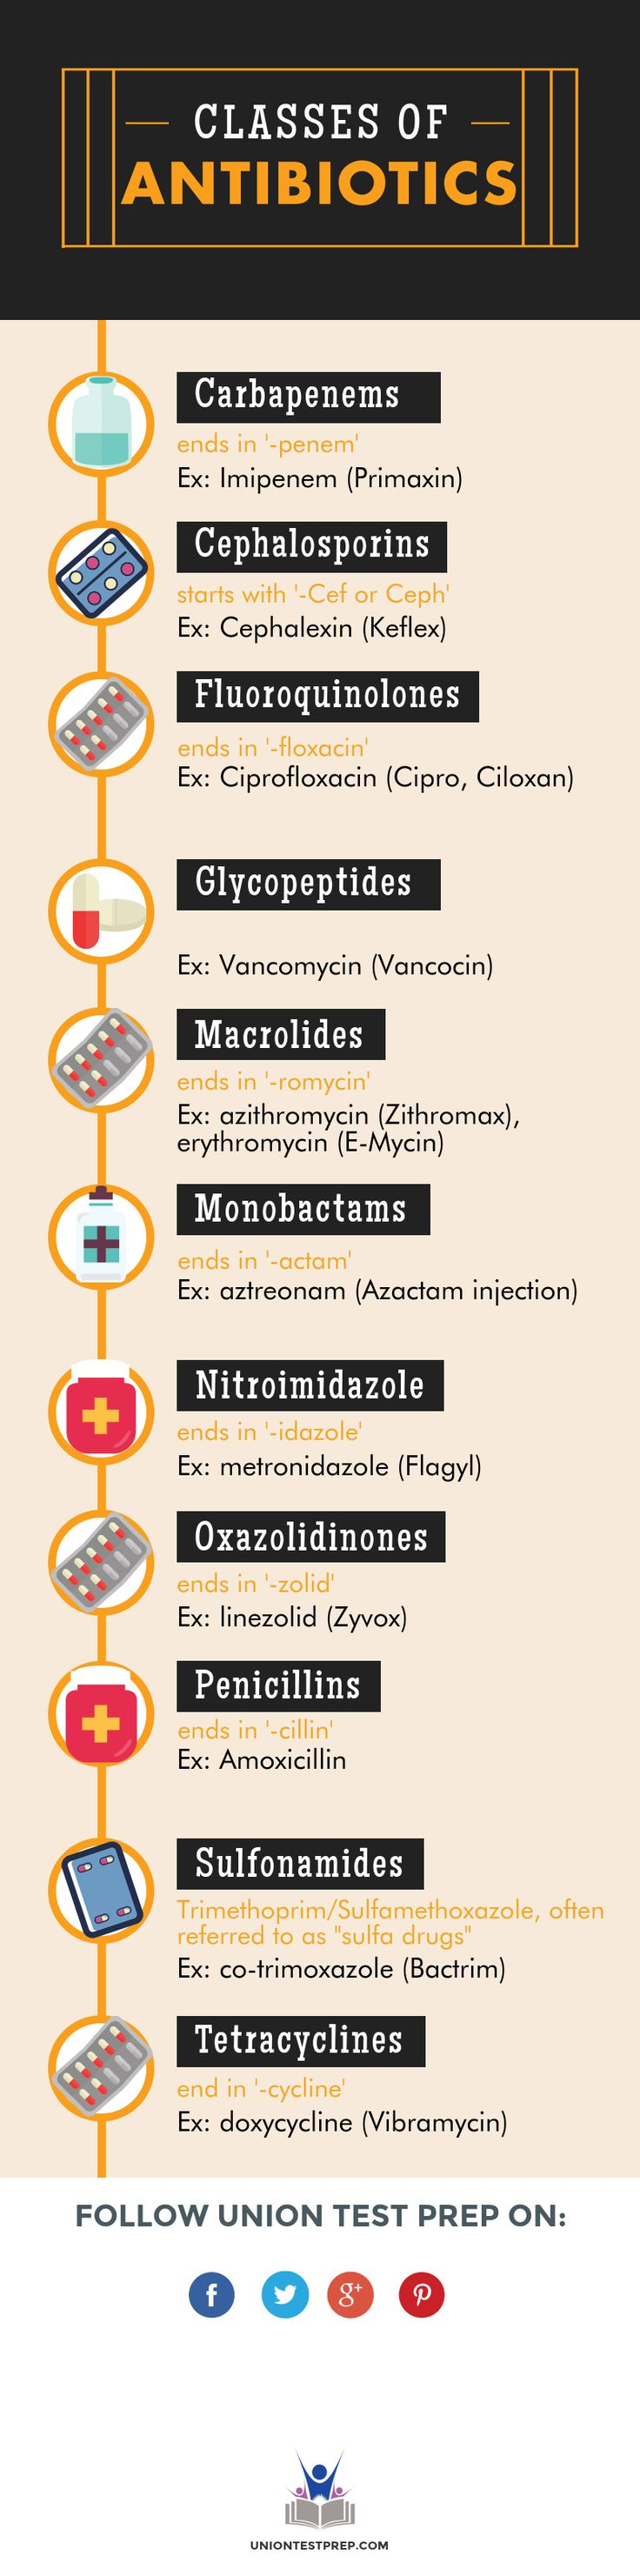 All about the different classes of antibiotics